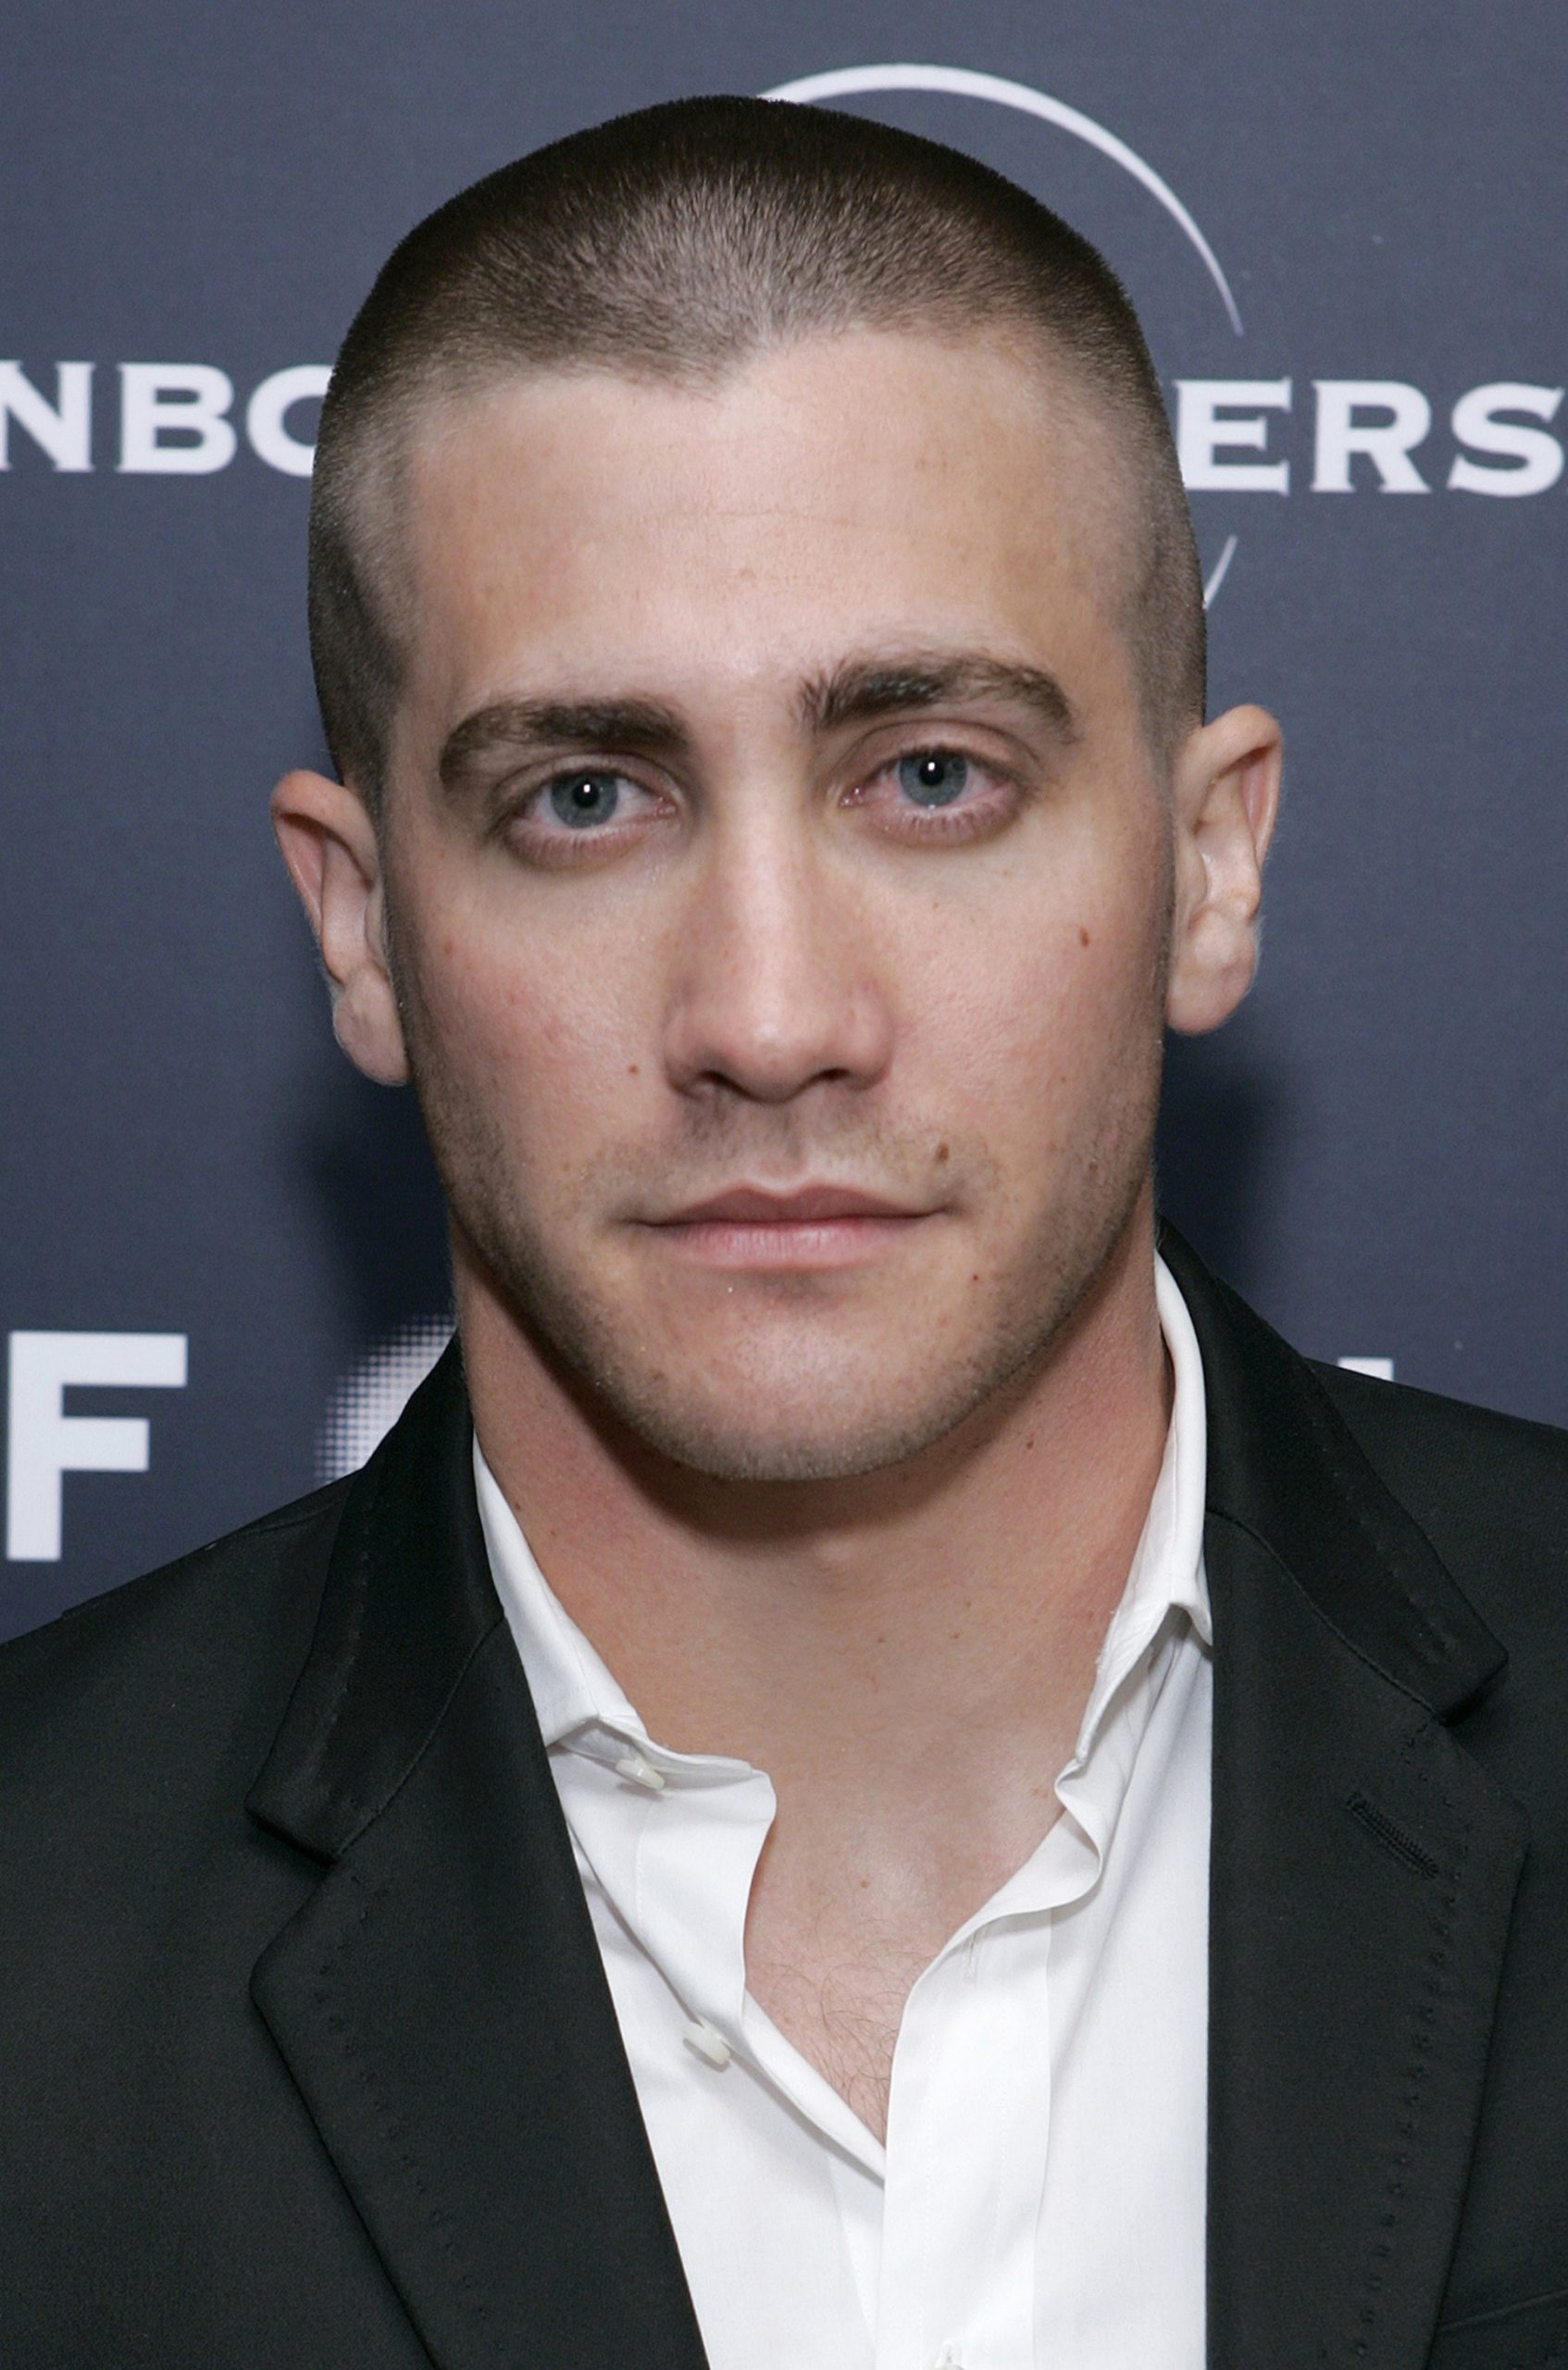 10 Buzz Cuts That Will Convince You To Shave Your Head GQ Buzz Cut Round Face